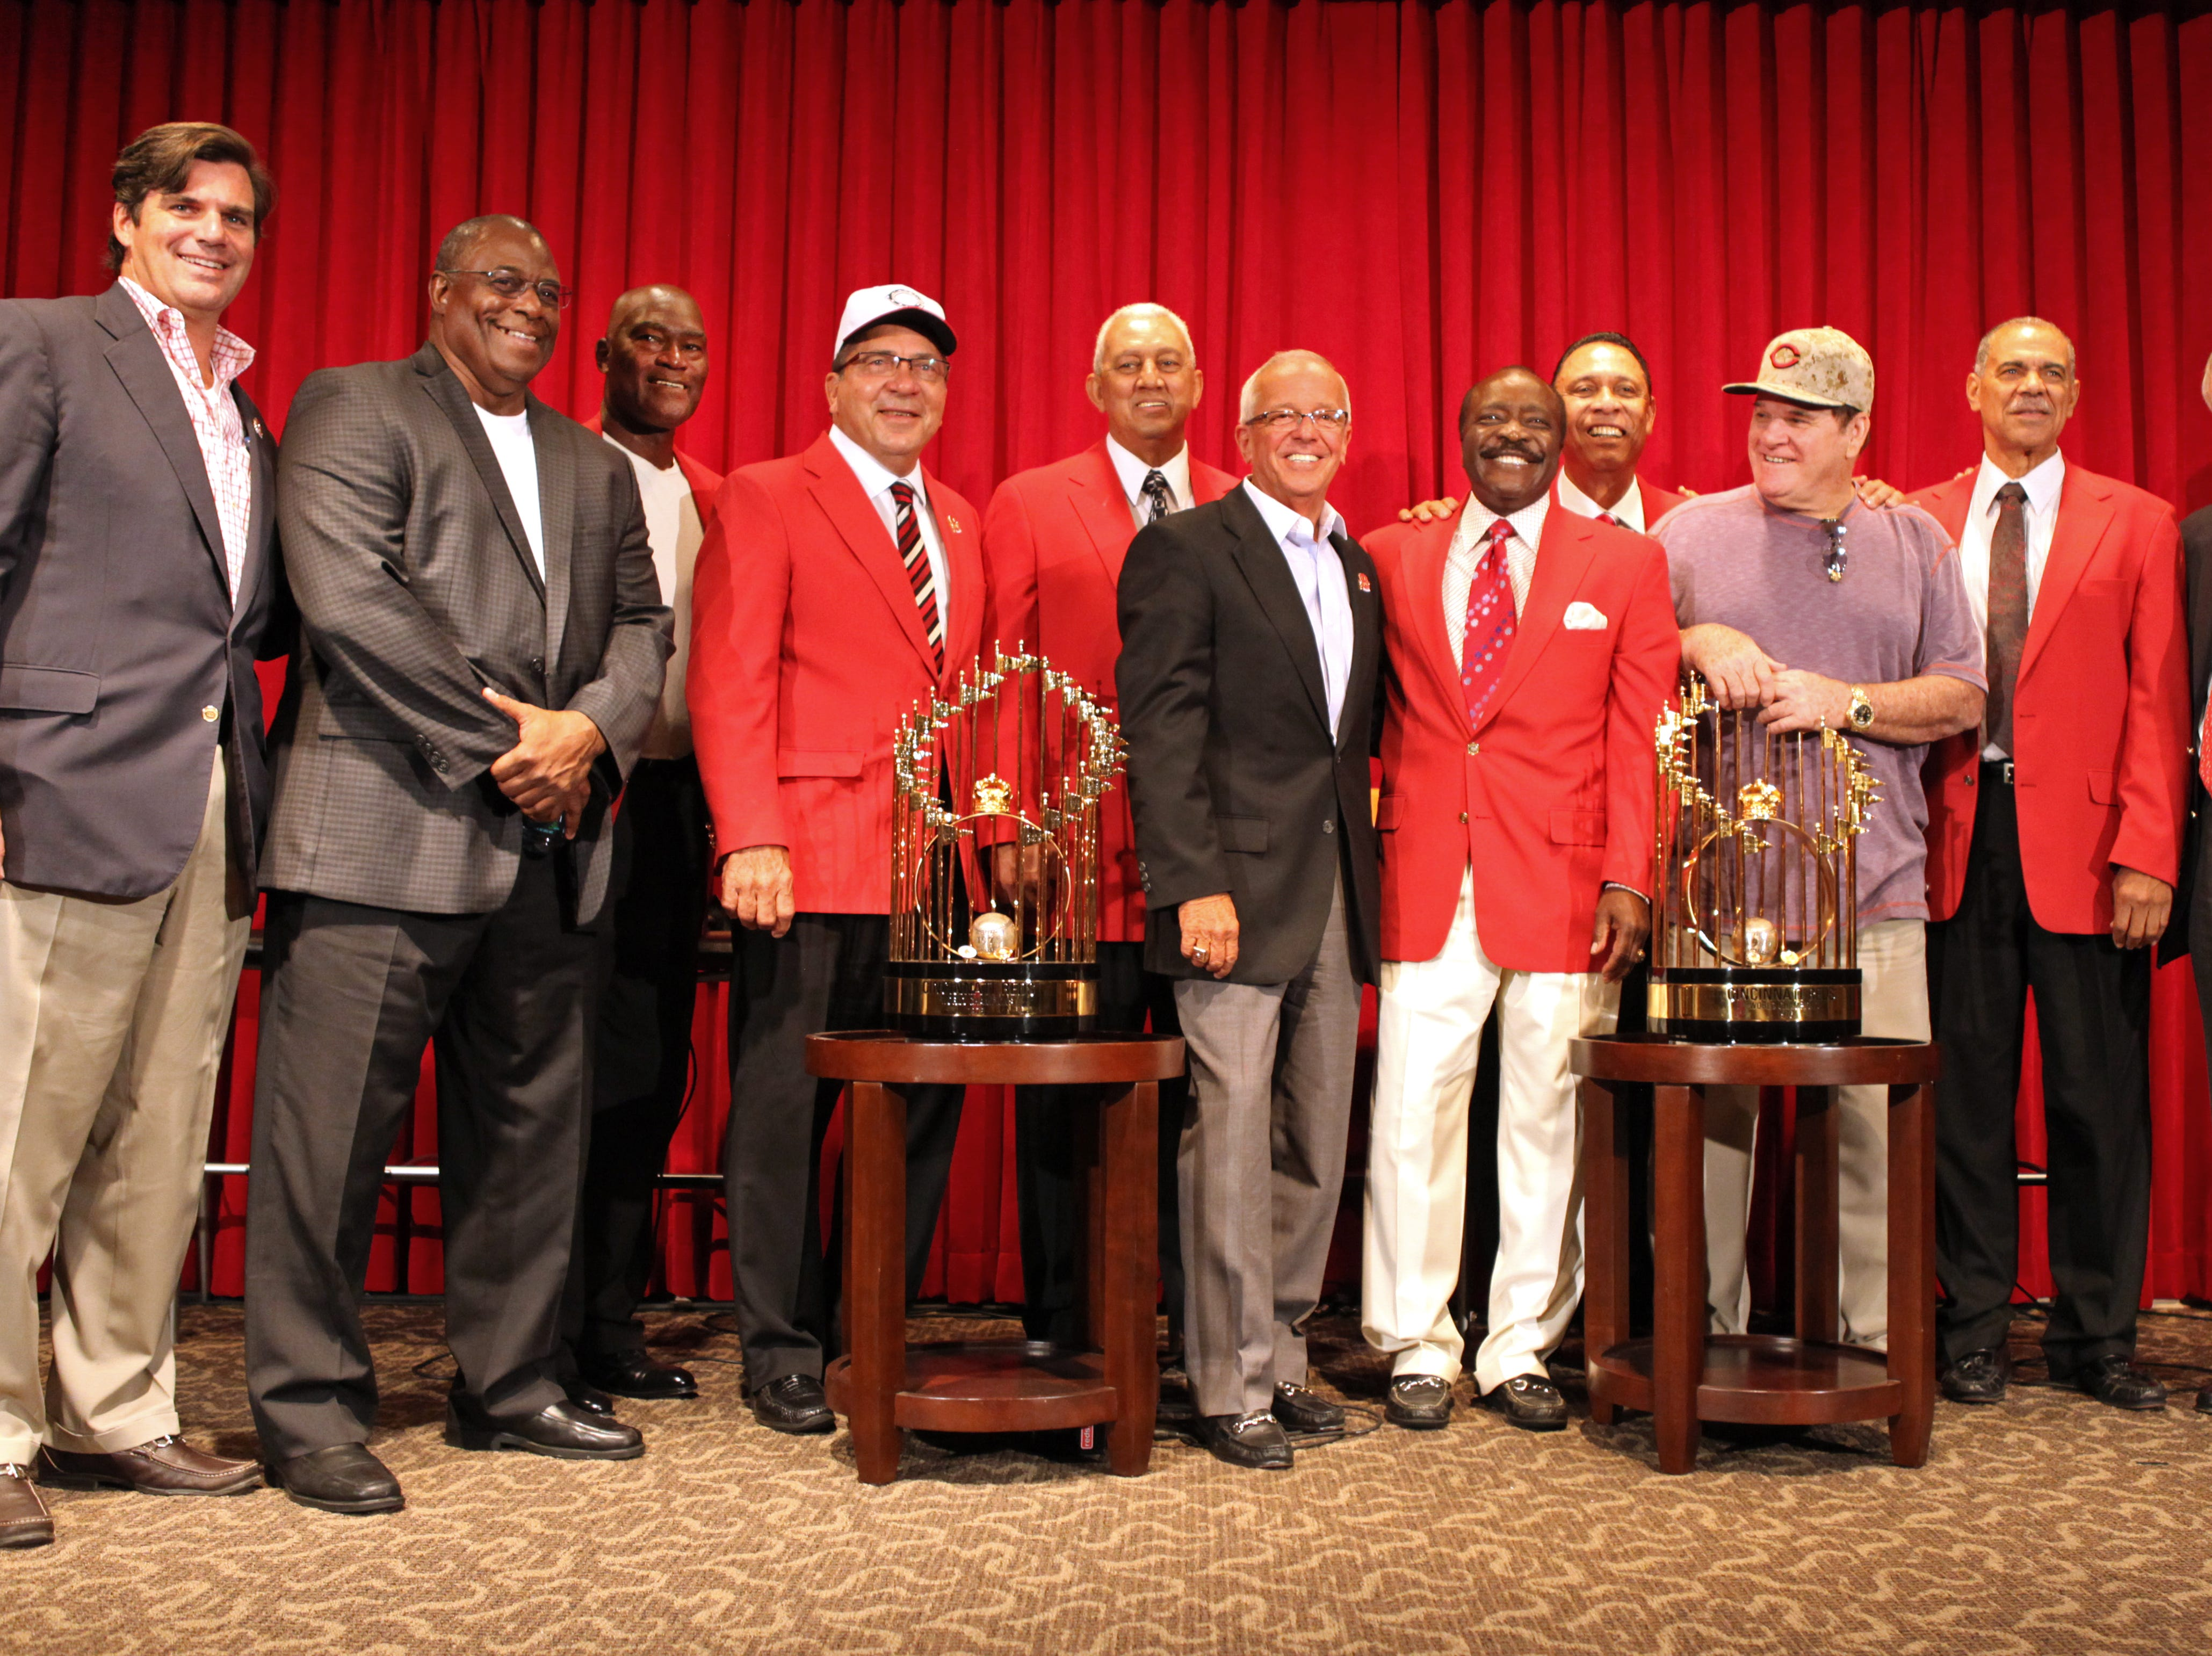 Saturday, Sept. 7, 2013 The ÒGreat EightÓ from the 1975 & 1976 World Championship era, held a press conference following the dedication of Joe Morgan's sculpture that is at the entrance of Great American Ballpark. After, they posed with a photo, along with Phil Castellini, left, Marty Brennaman, center and Reds owner Bob Castellini, right. The 'Great Eight' L-R) Ken Griffey Sr. (right field), George Foster (left field), Johnny Bench (catcher), David Concepcion (shortstop), Joe Morgan (second base), Tony Perez (first base), Pete Rose (third base) and Cesar Geronimo (center field). This weekend was the first time the ÒGreat EightÓ assembled for an event at Great American Ball Park. The Reds were playing the Los Angeles Dodgers.